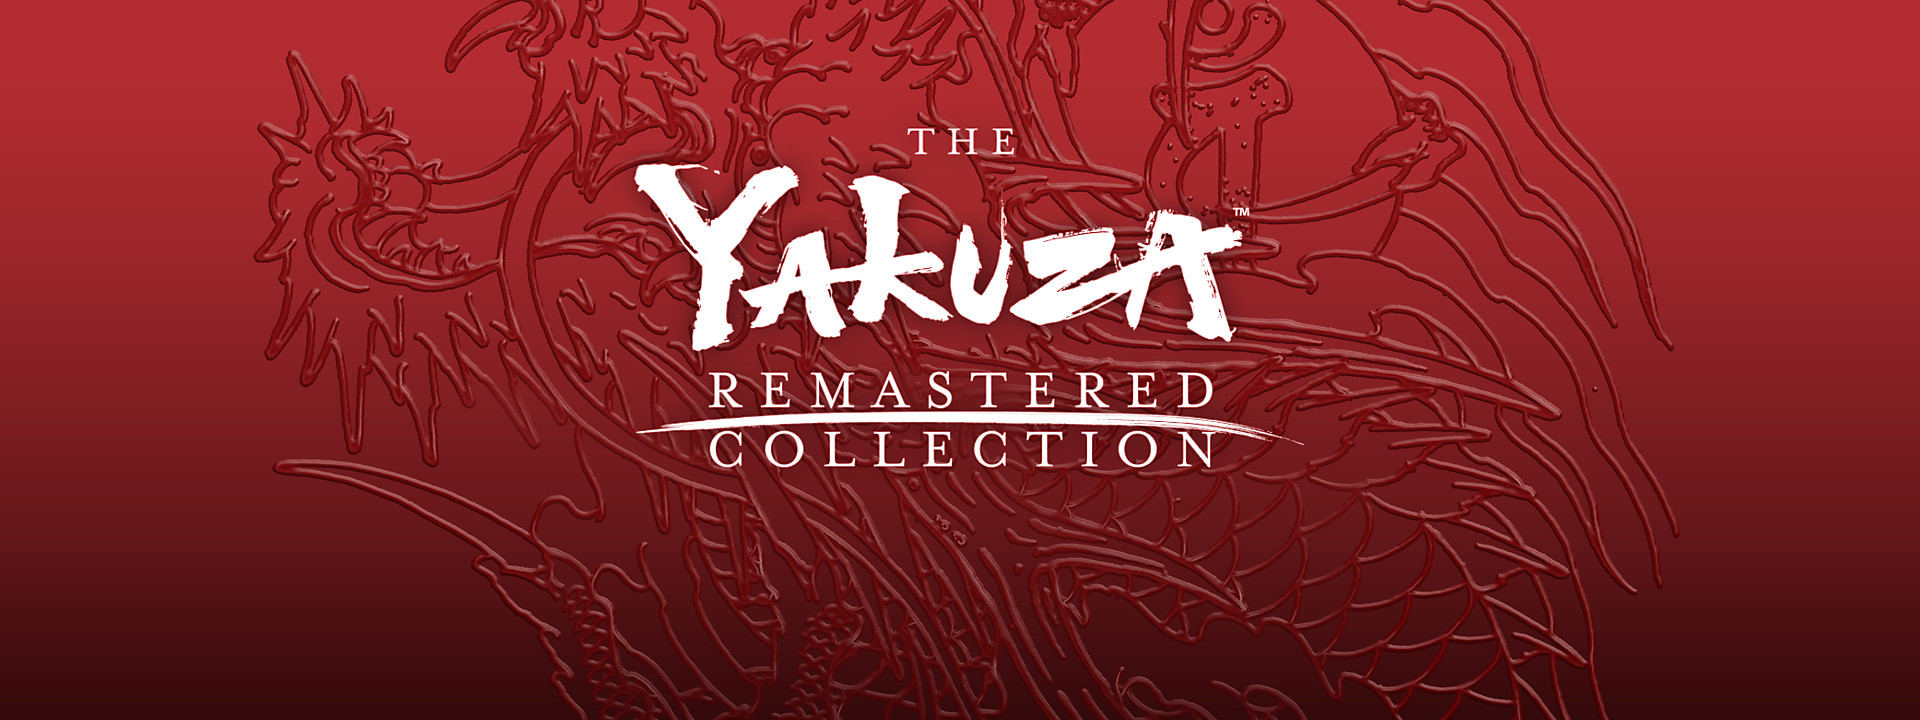 The Yakuza Remastered Collection - Yakuza 3, 4 and 5 Now Available